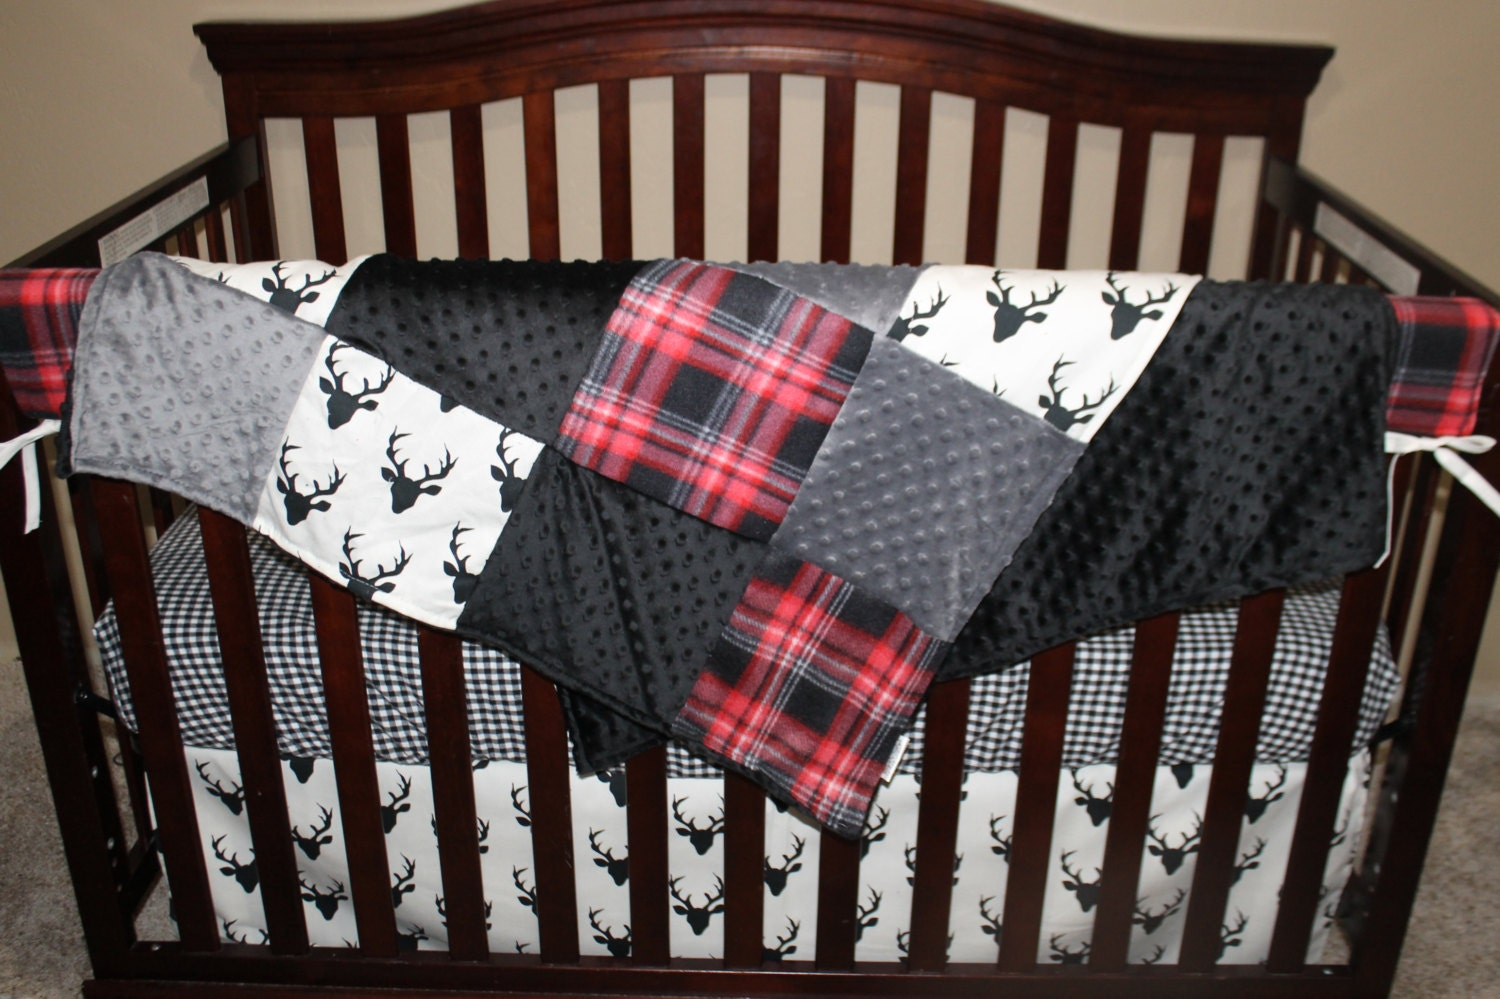 Baby Crib Bedding Black Buck Deer Lodge Red Black Plaid